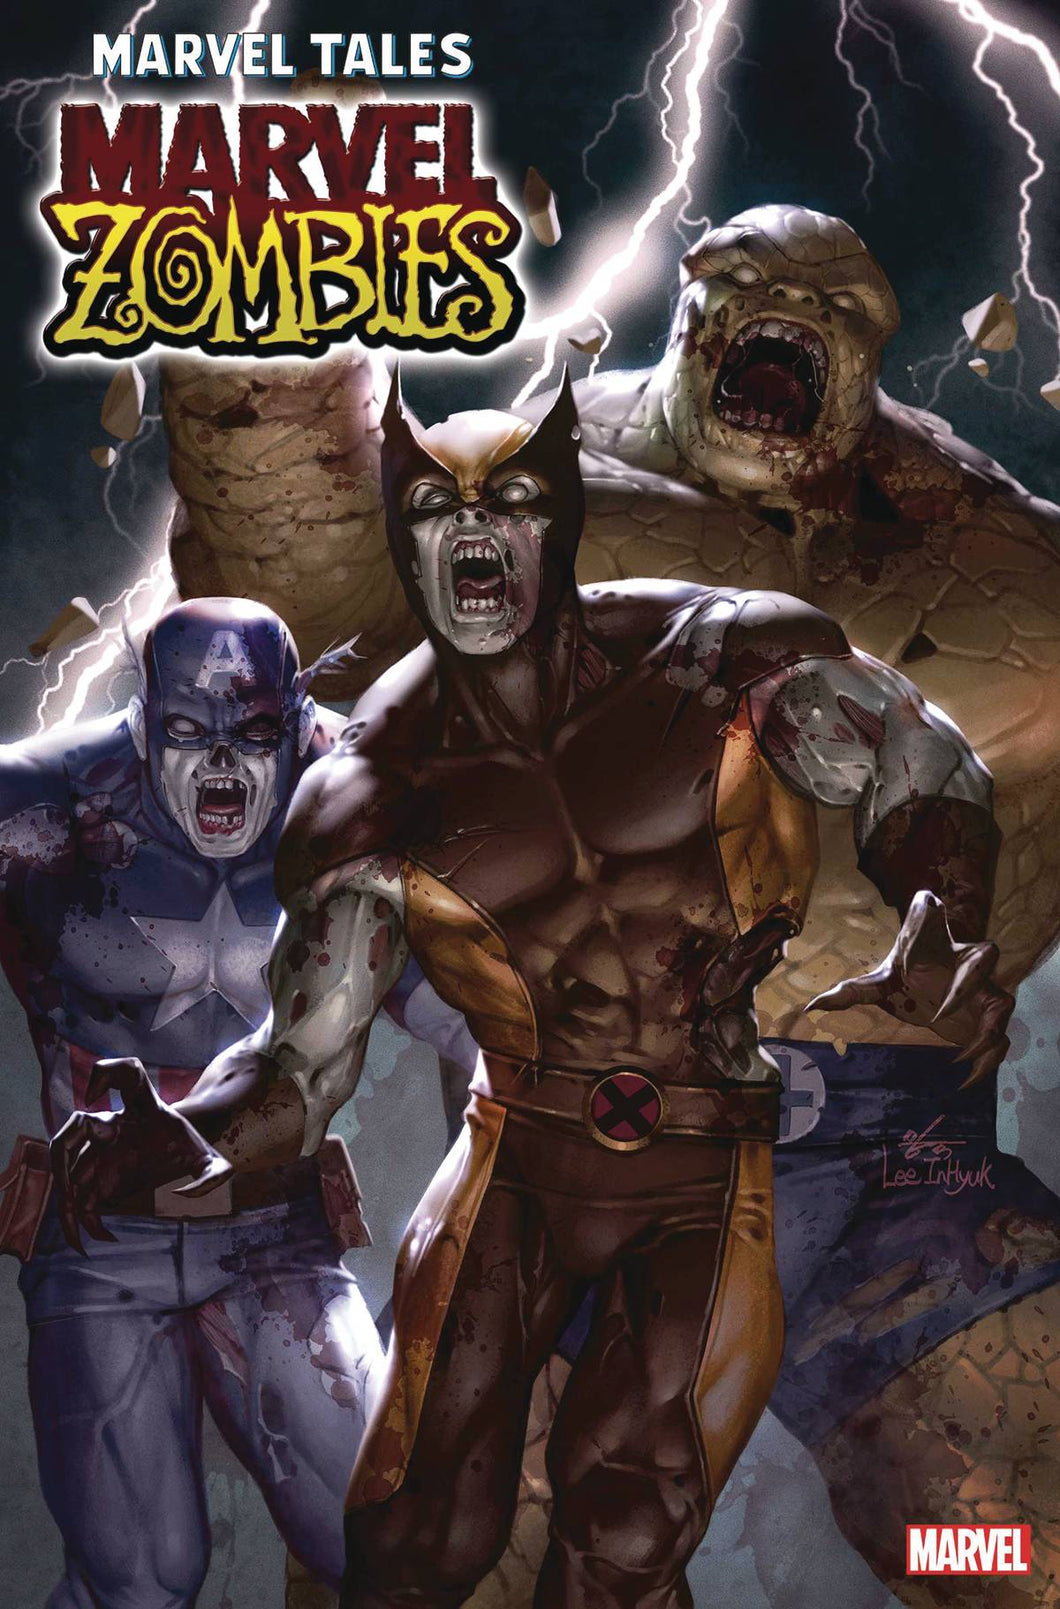 MARVEL ZOMBIES: ORIGINAL MARVEL ZOMBIES MARVEL TALES #1